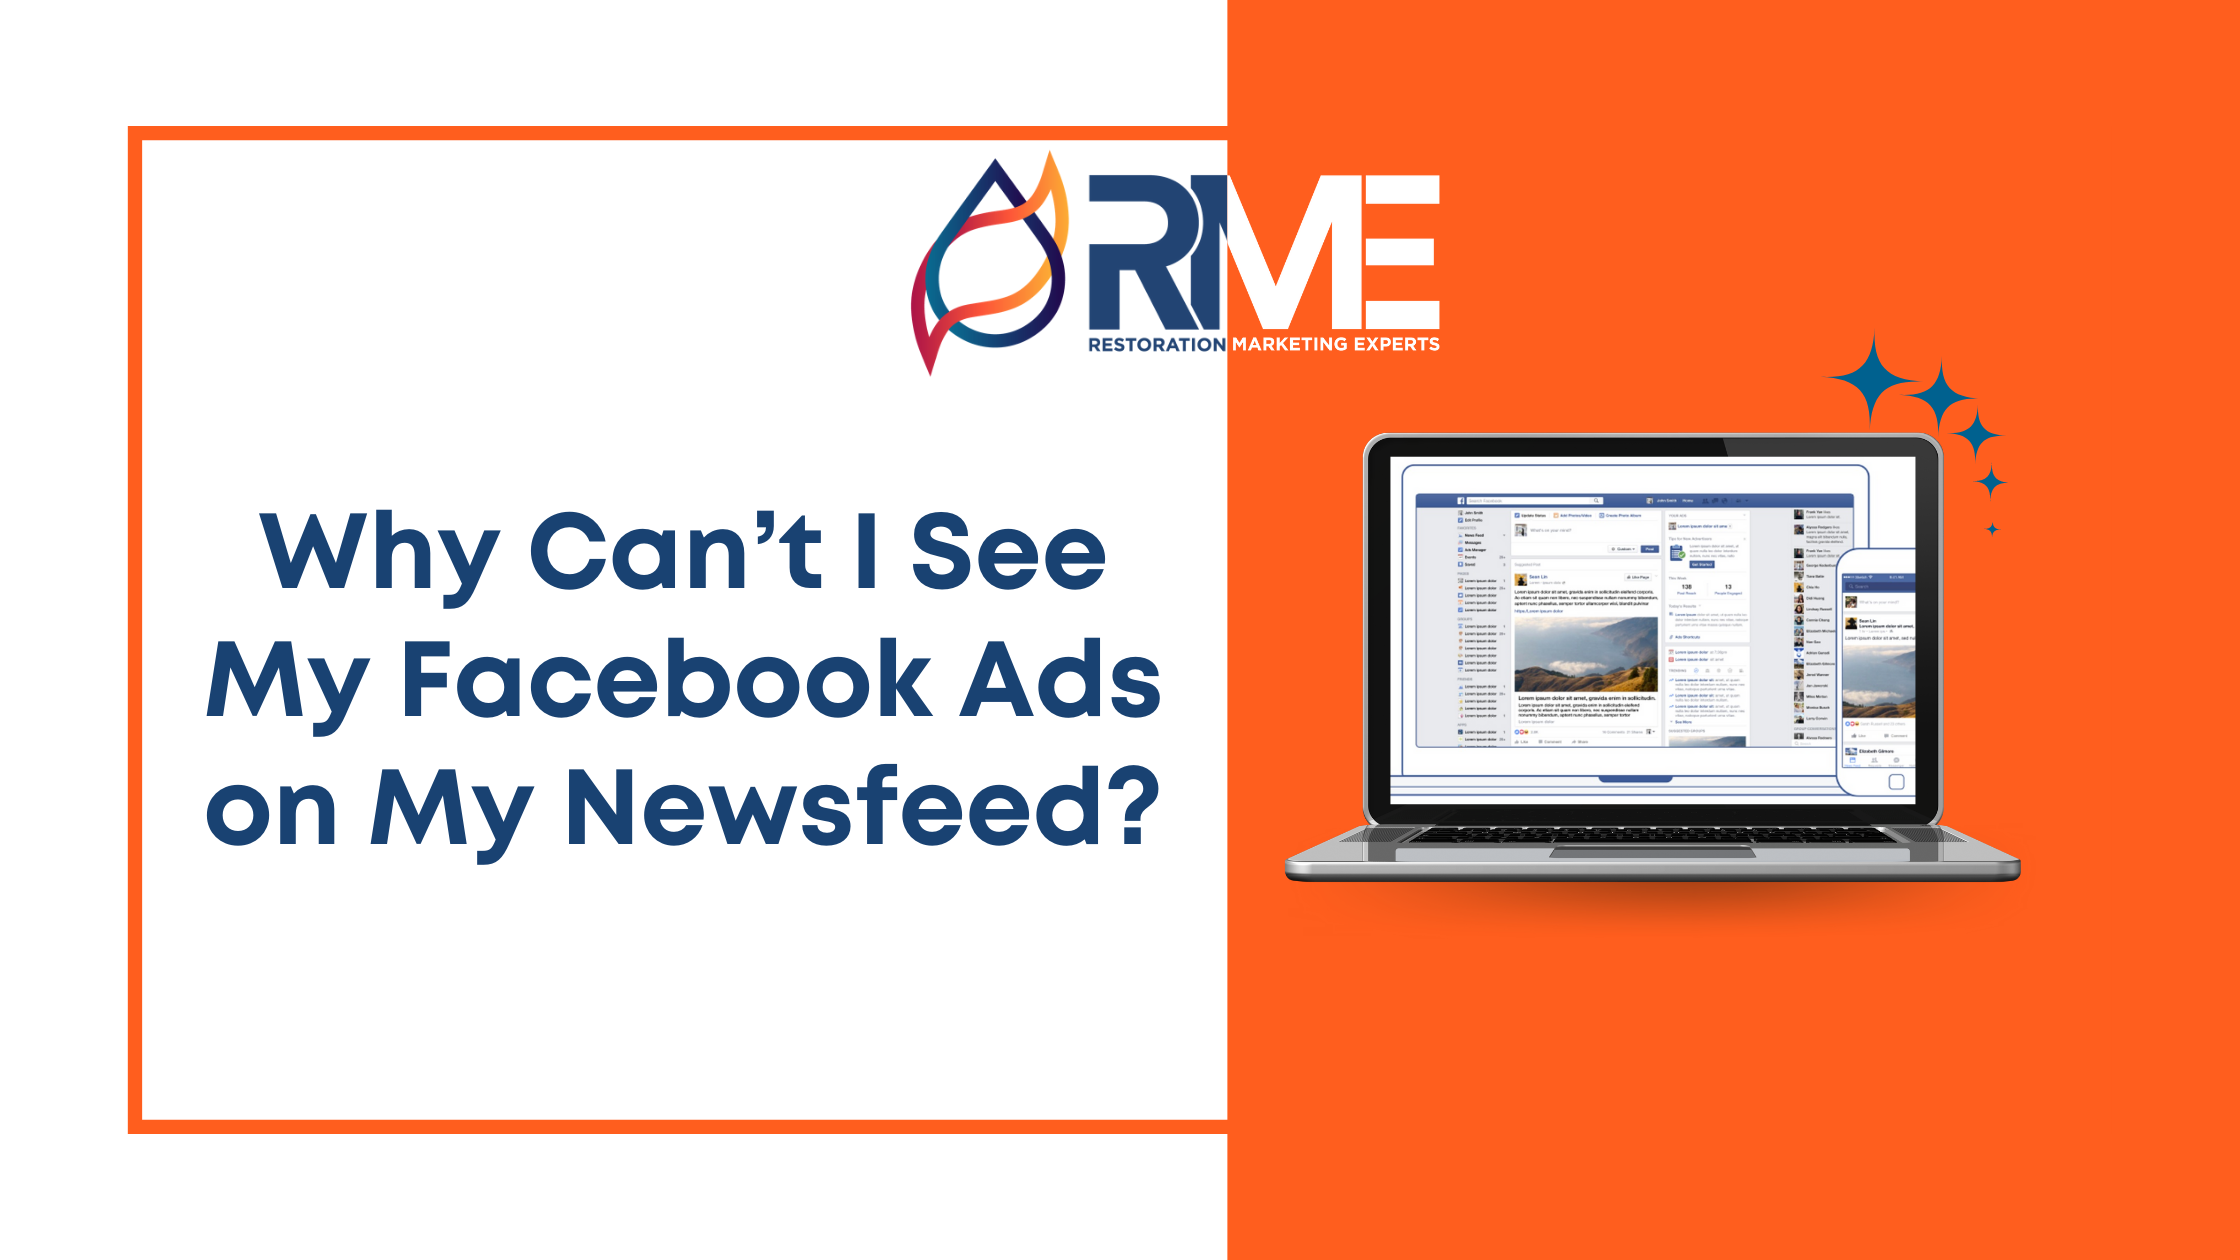 Why Can't I See My Facebook Ads on My Newsfeed?